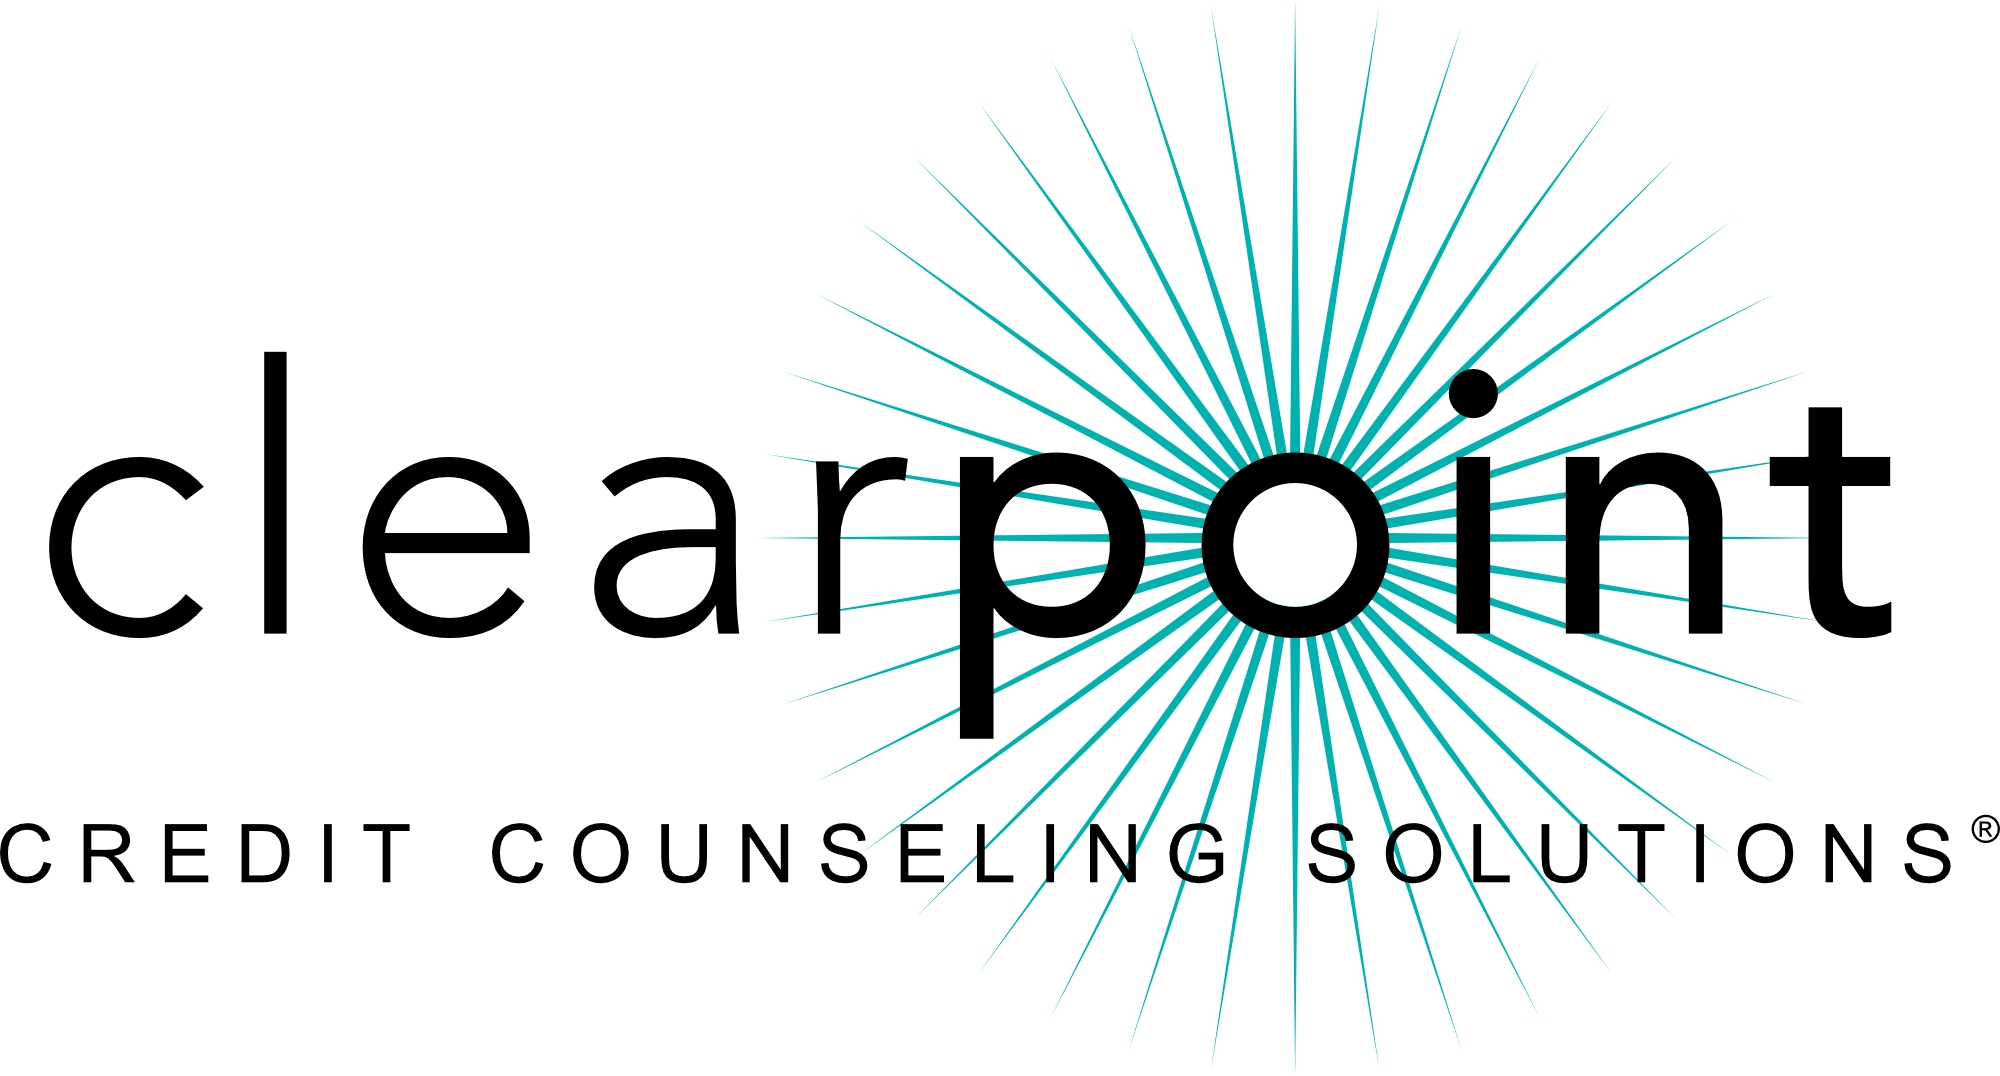 Clearpoint Credit Counseling